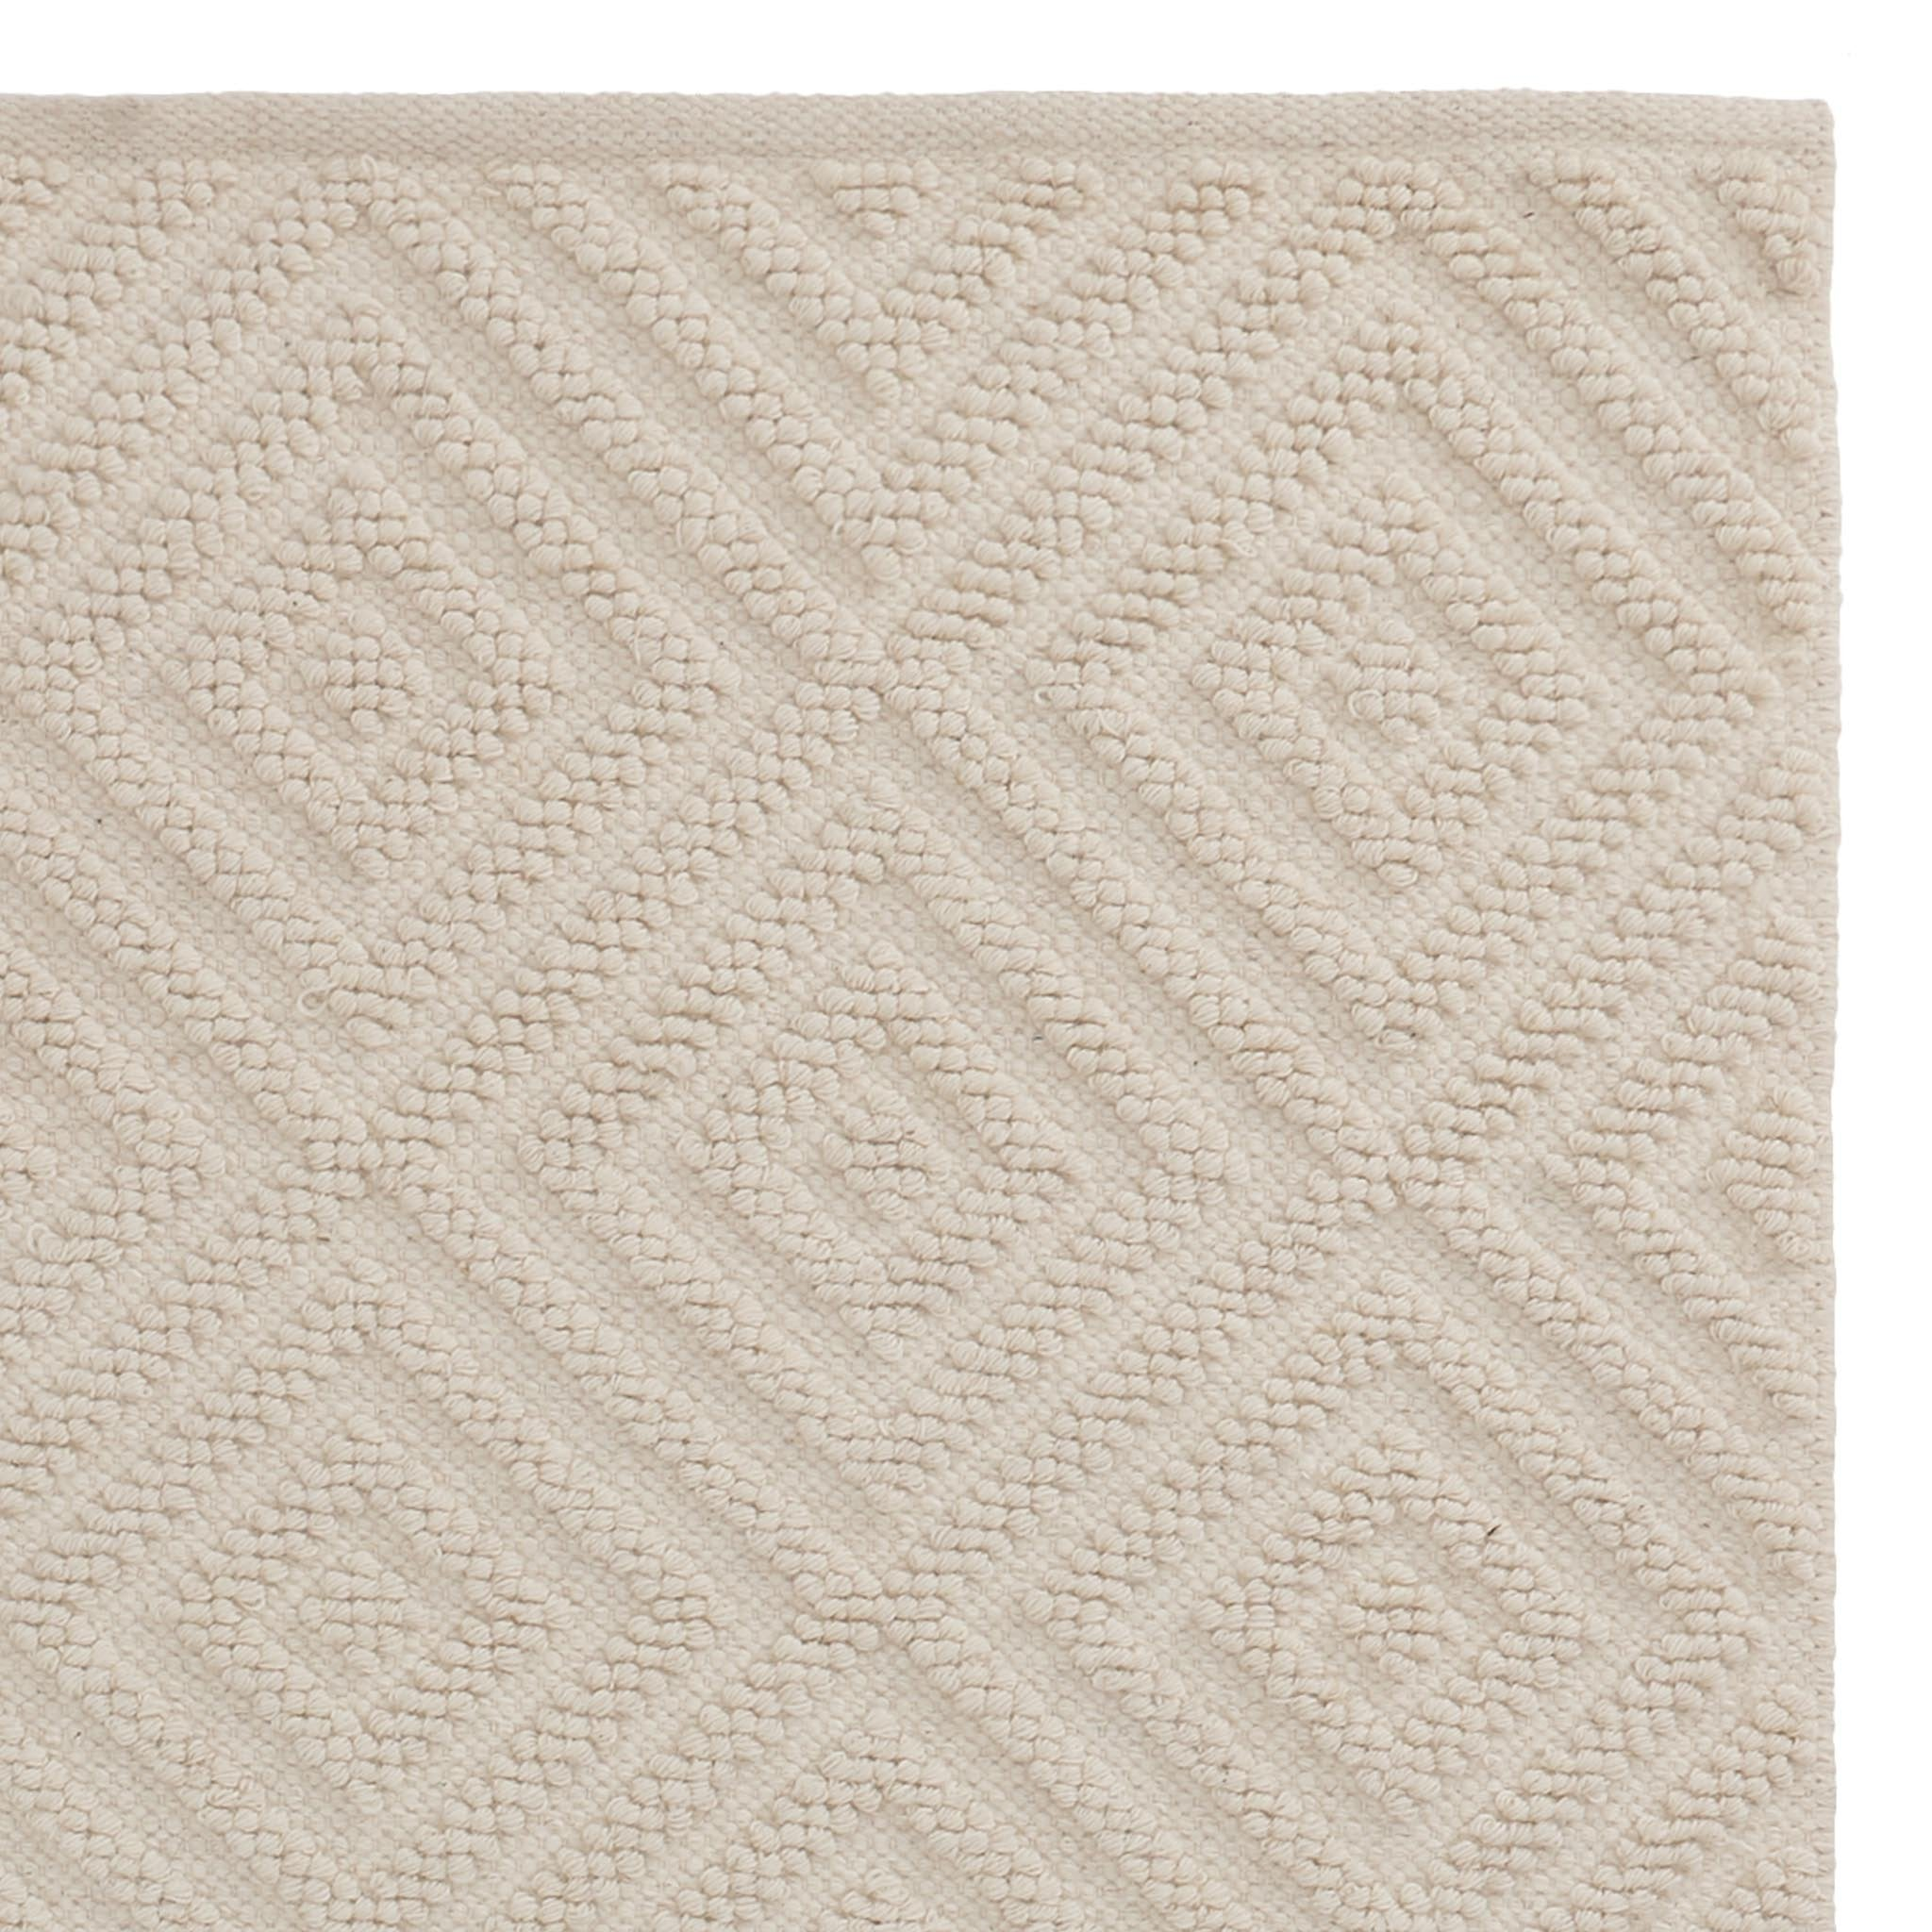 Barod Rug in natural white | Home & Living inspiration | URBANARA